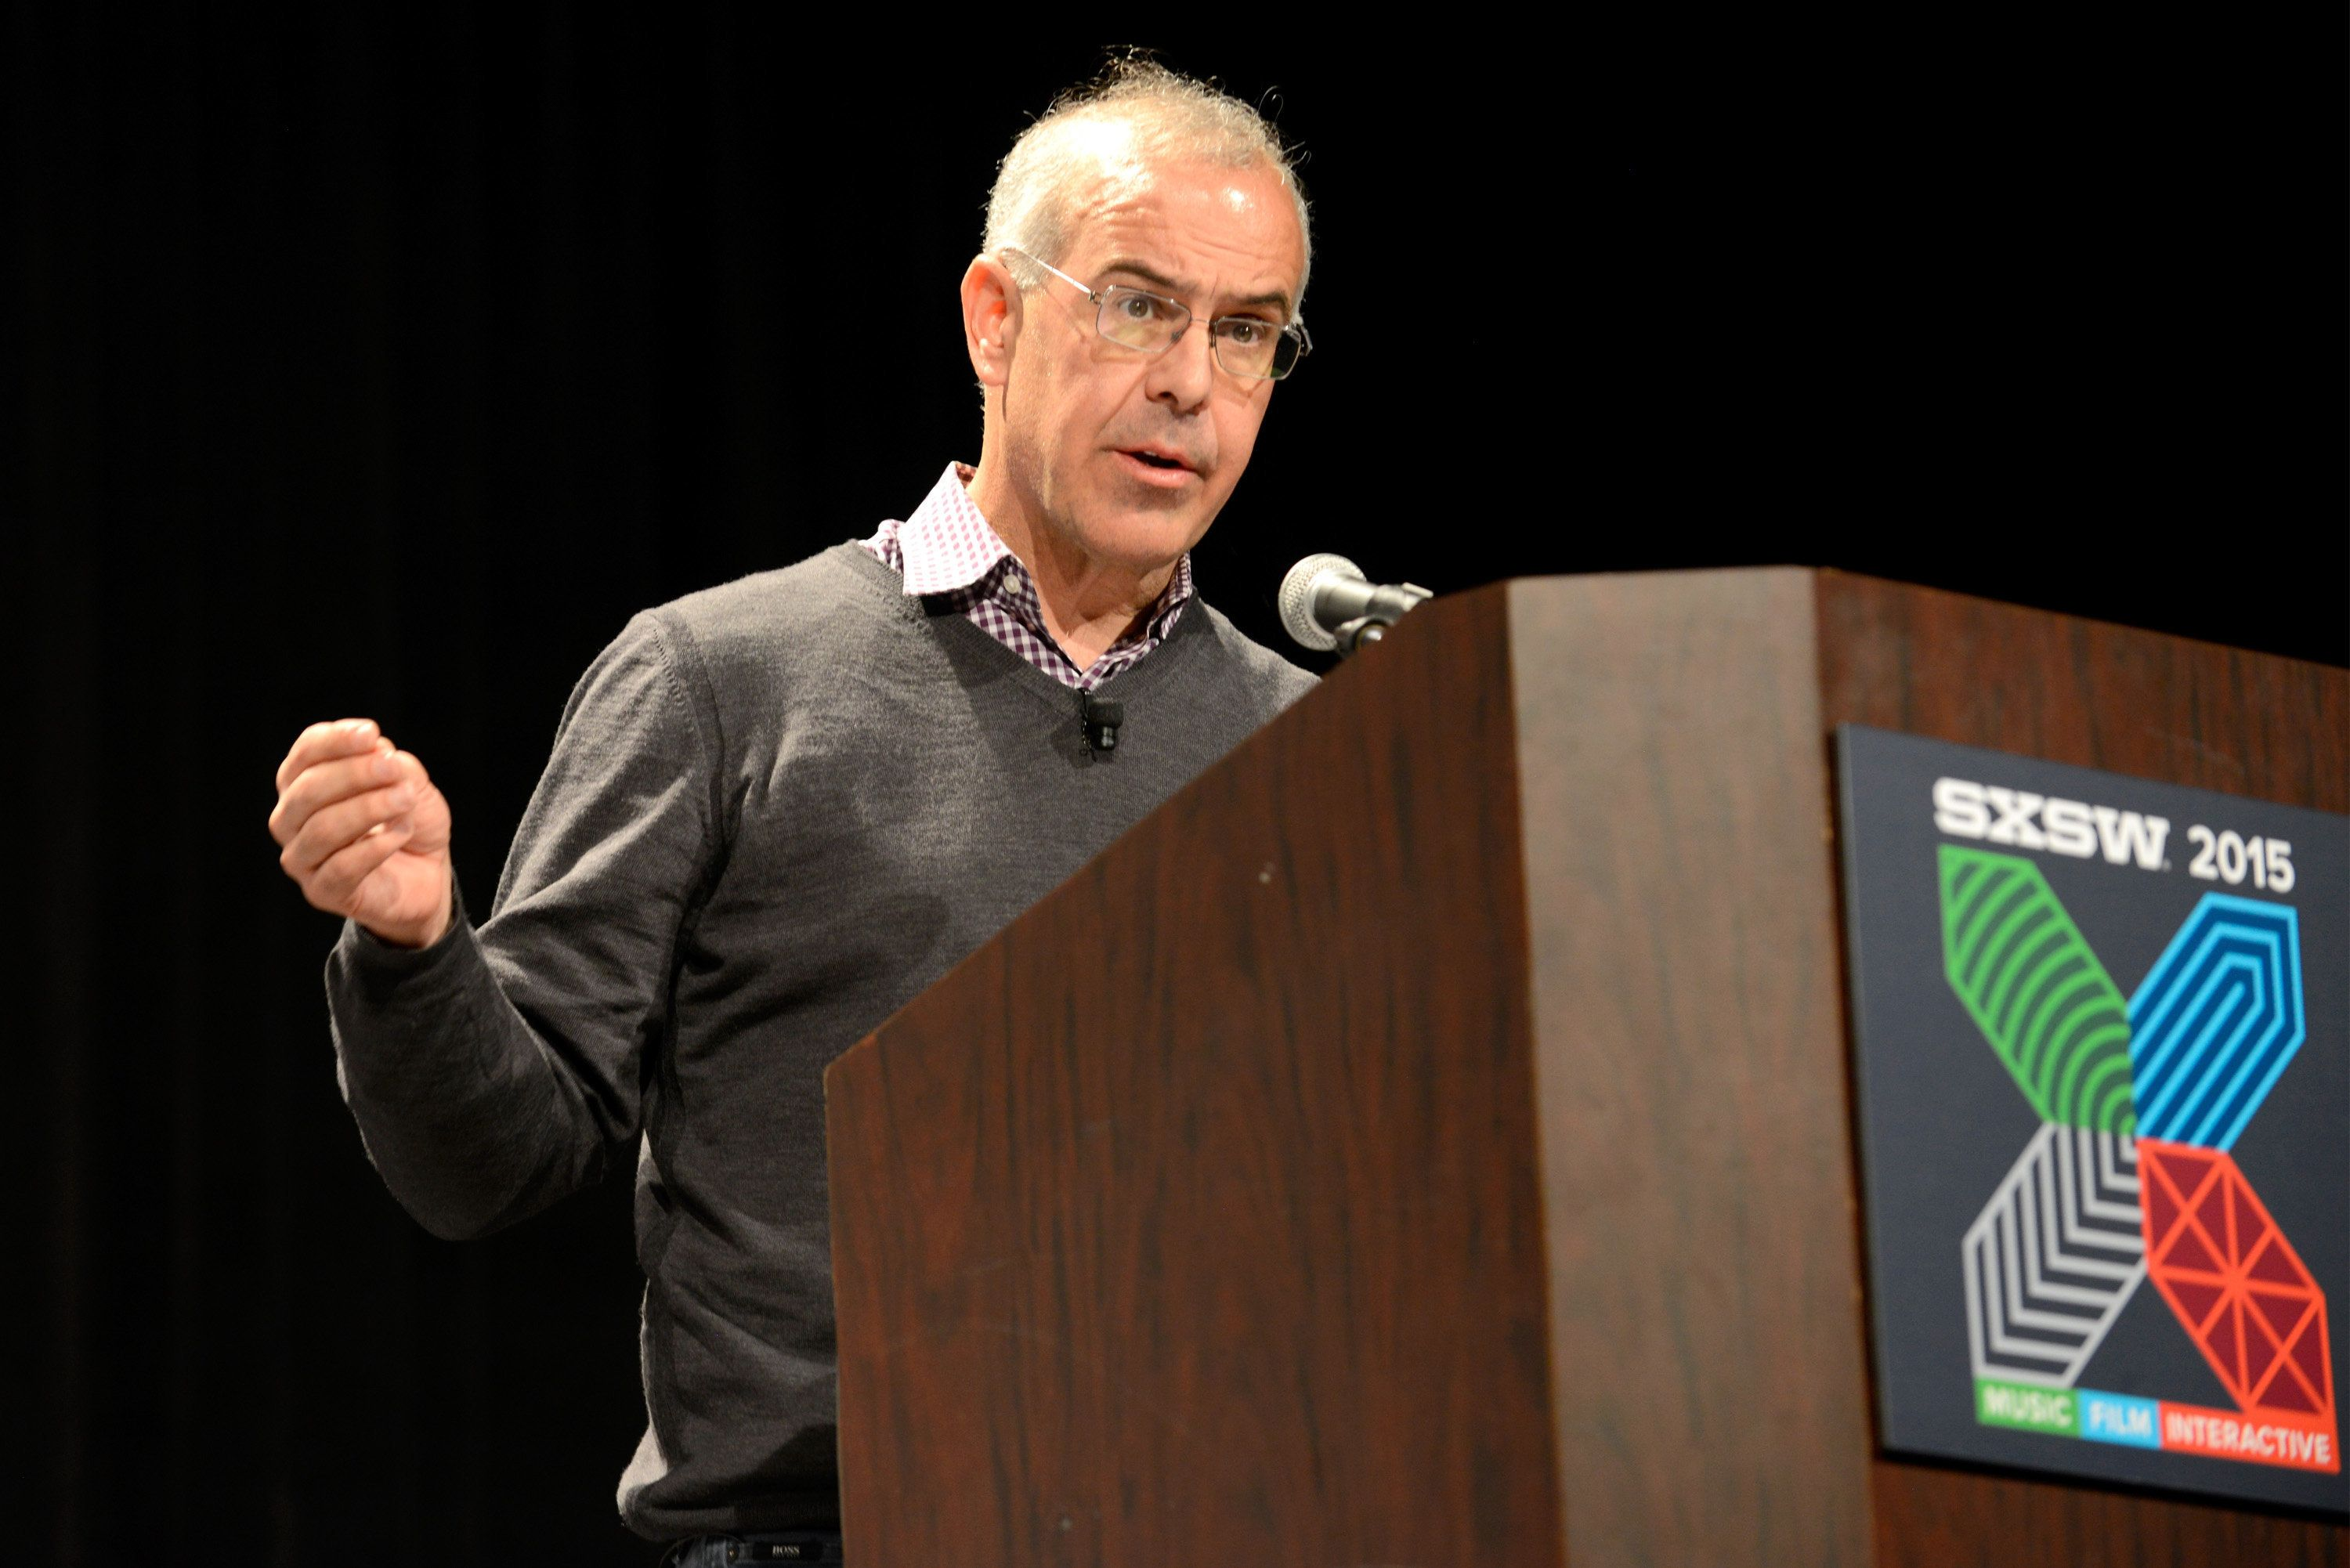 AUSTIN, TX - MARCH 13:  David Brooks, Op-Ed Columnist for The New York Times speaks onstage during 'The Road To Character' during the 2015 SXSW Music, Film + Interactive Festival at Austin Convention Center on March 13, 2015 in Austin, Texas.  (Photo by Robert A Tobiansky/Getty Images for SXSW)